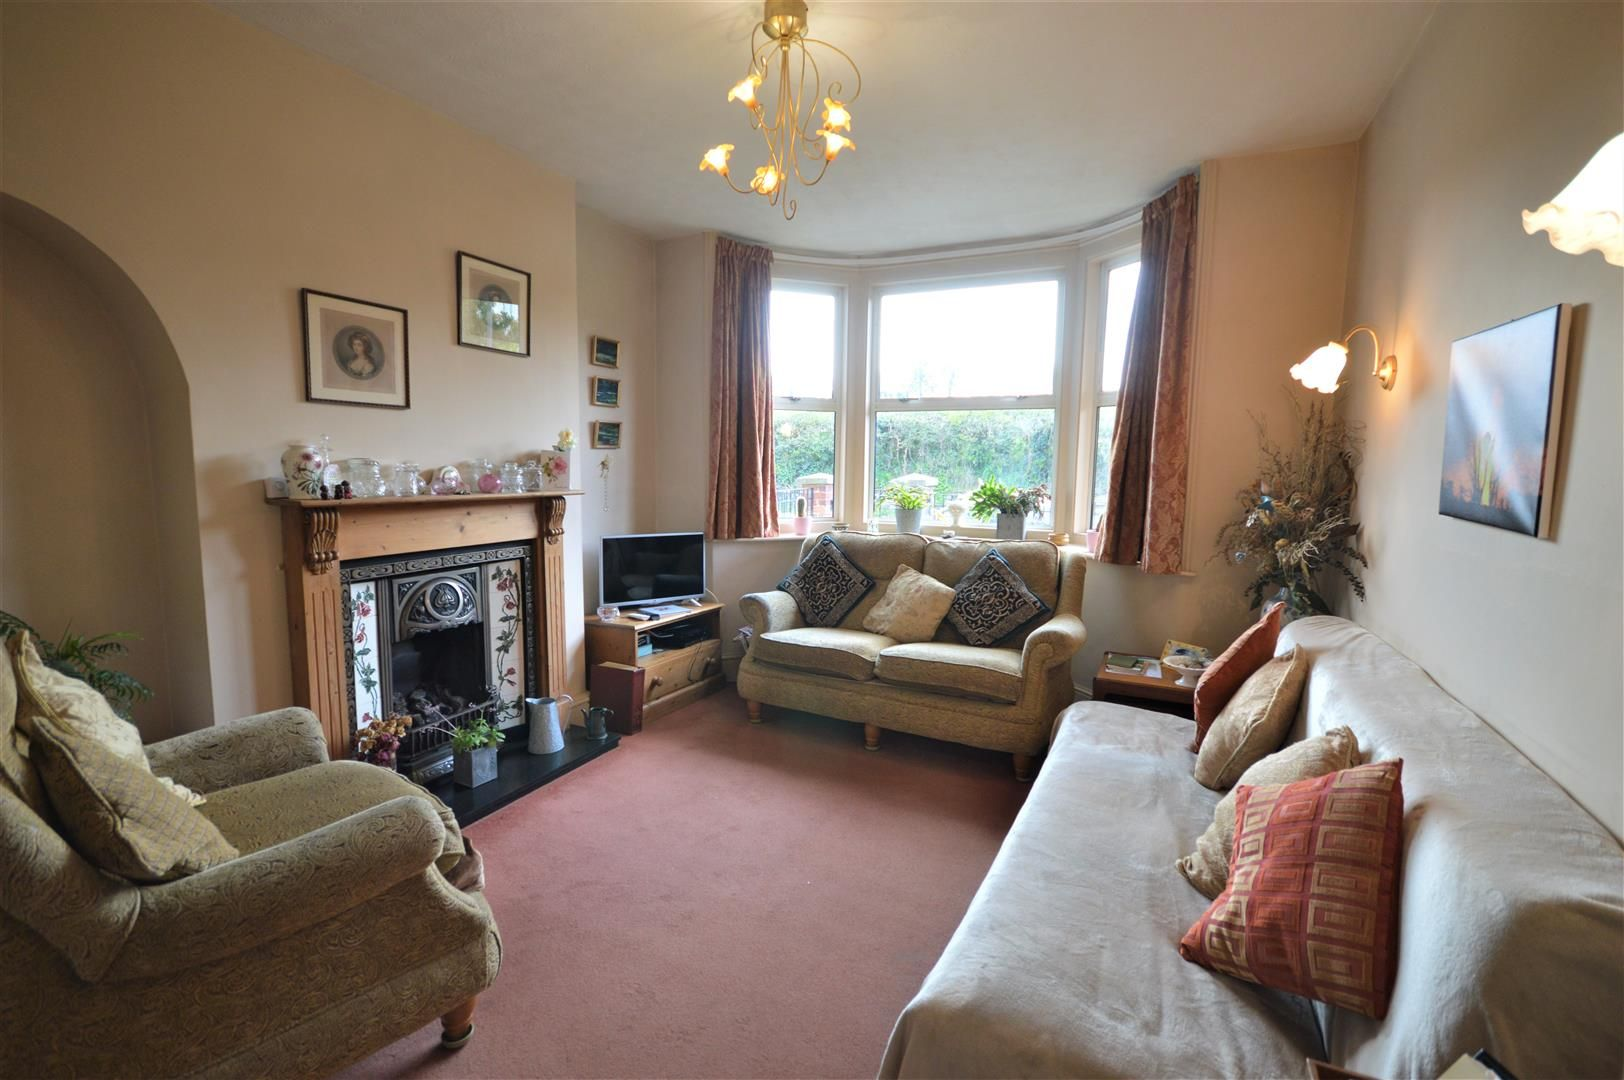 3 bed end of terrace for sale in Leominster  - Property Image 3